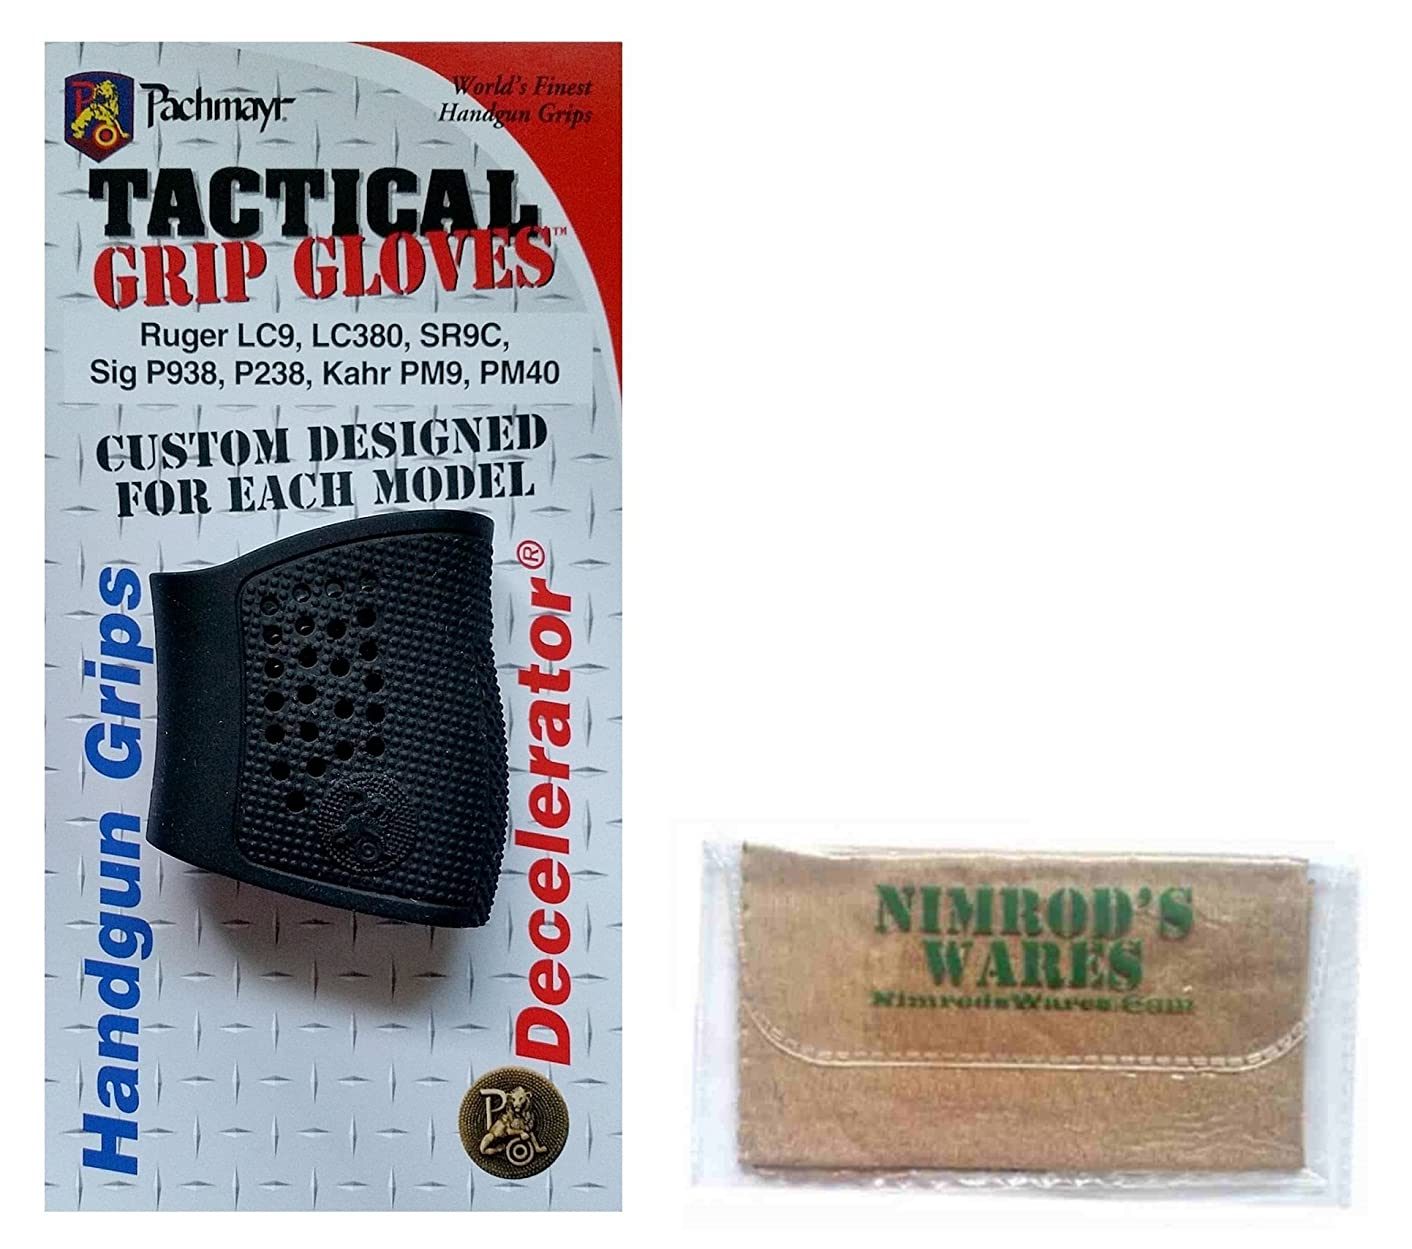 Nimrod's Wares Pachmayr Tactical Grip Glove Sleeve for Sig Sauer P238 Microfiber Cloth